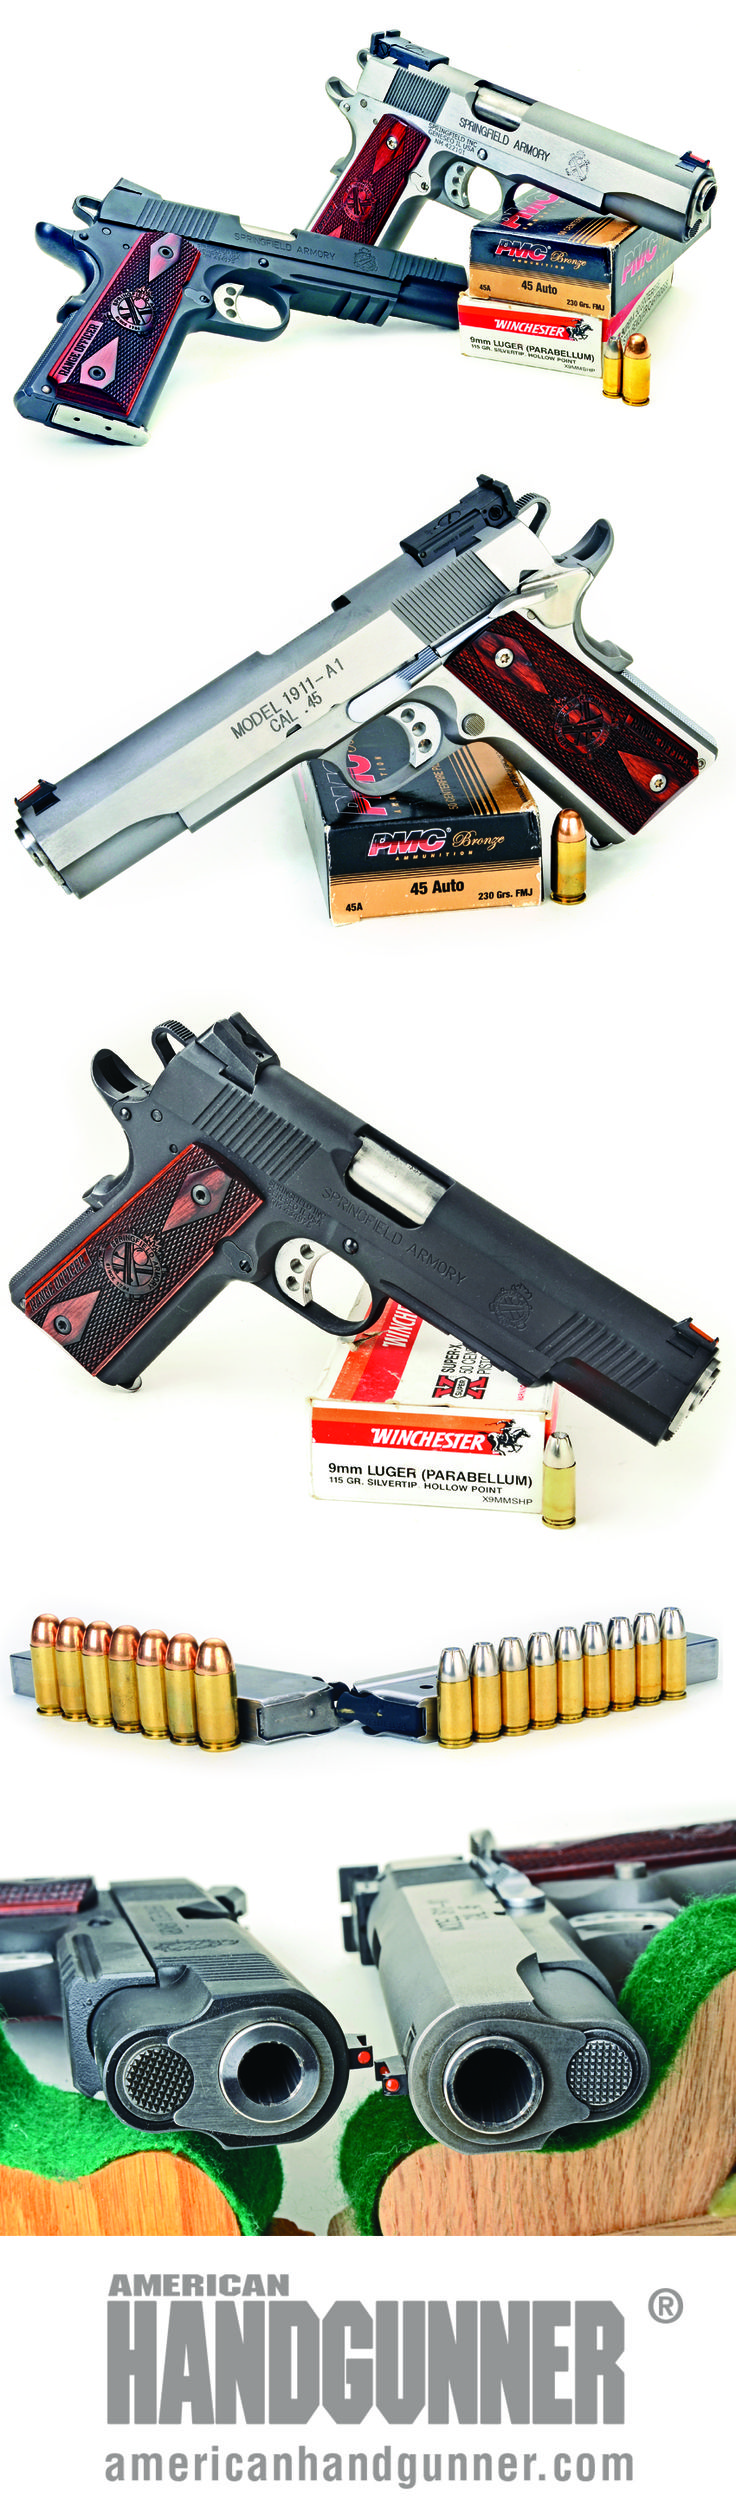 "Springfield Armory's Range Officers | Do-Everything Guns In .45 ACP & 9mm | By Mike Venturino | The Springfield Armory Range Officer .45 ACP with fully adjustable rear sight would make a dandy competition pistol. The Springfield Armory Range Officer ""Operator"" 9mm is a ""carry"" or duty-type pistol. Both are quality, heavy-duty pistols. They may be more weight than many people want to carry day-in and day-out, but they are built for lots of shooting. 